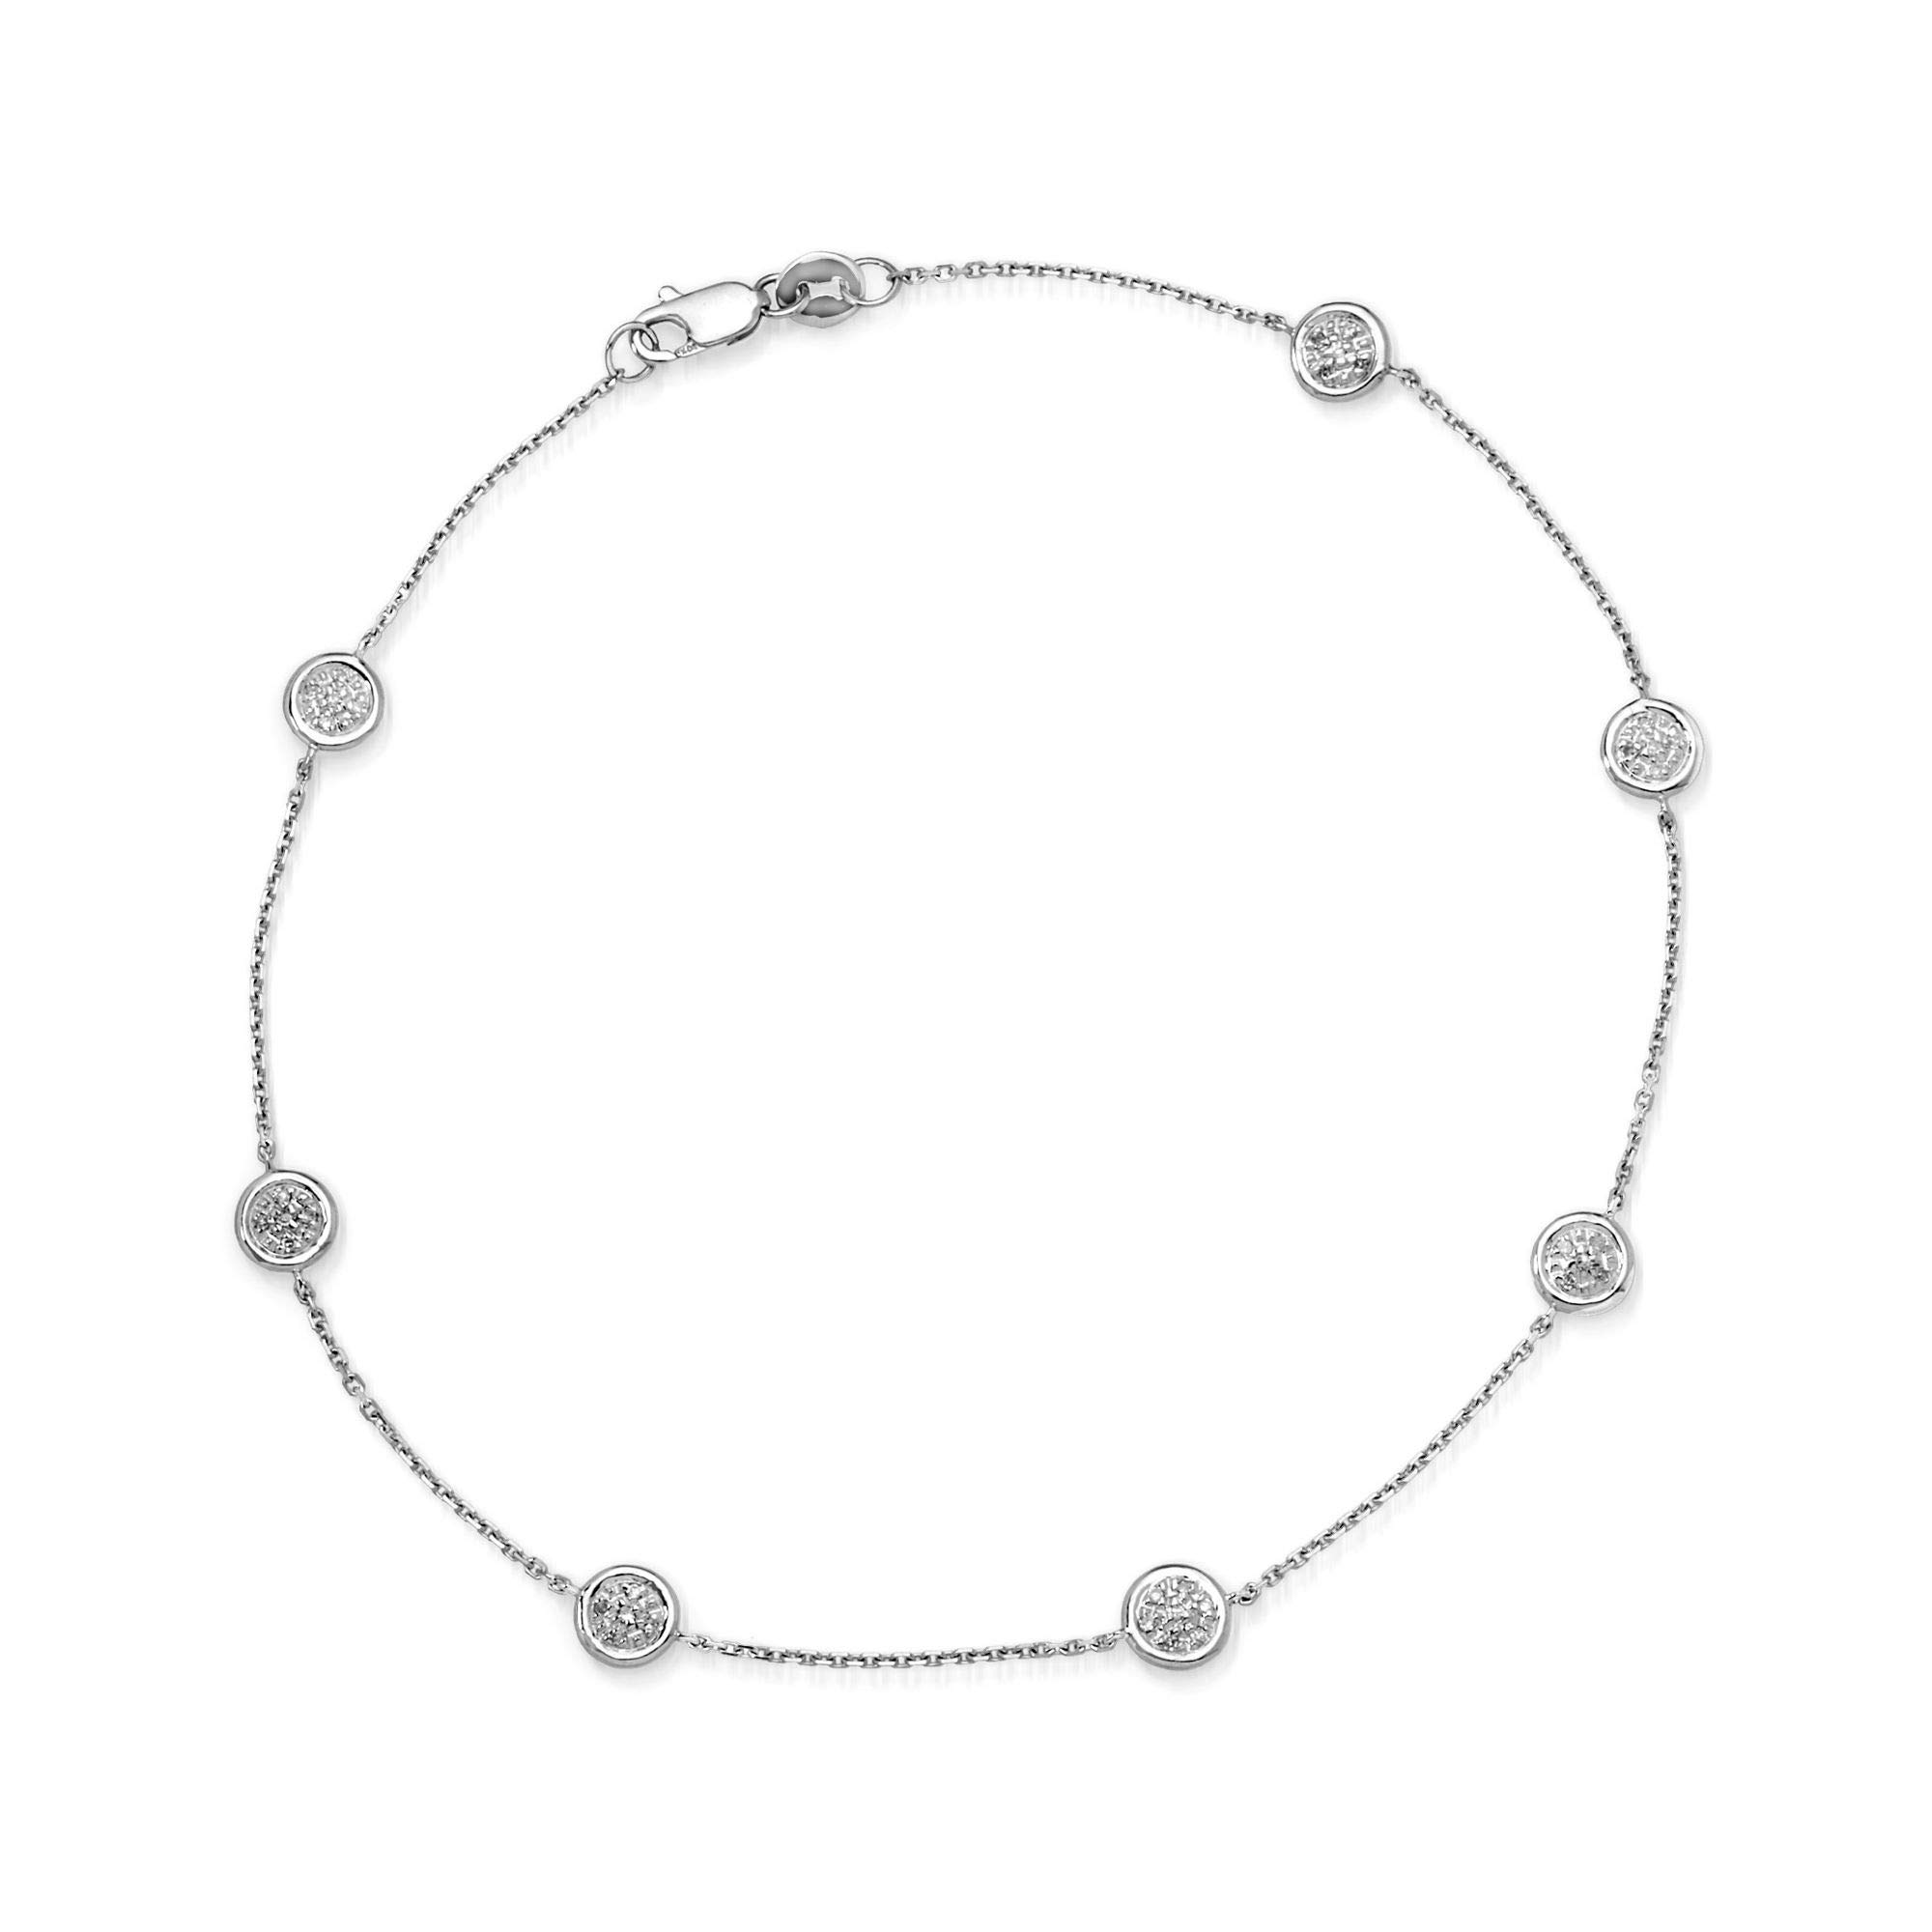 Ross-Simons 0.25 ct. t.w. Pave Diamond Station Anklet in 14kt White Gold